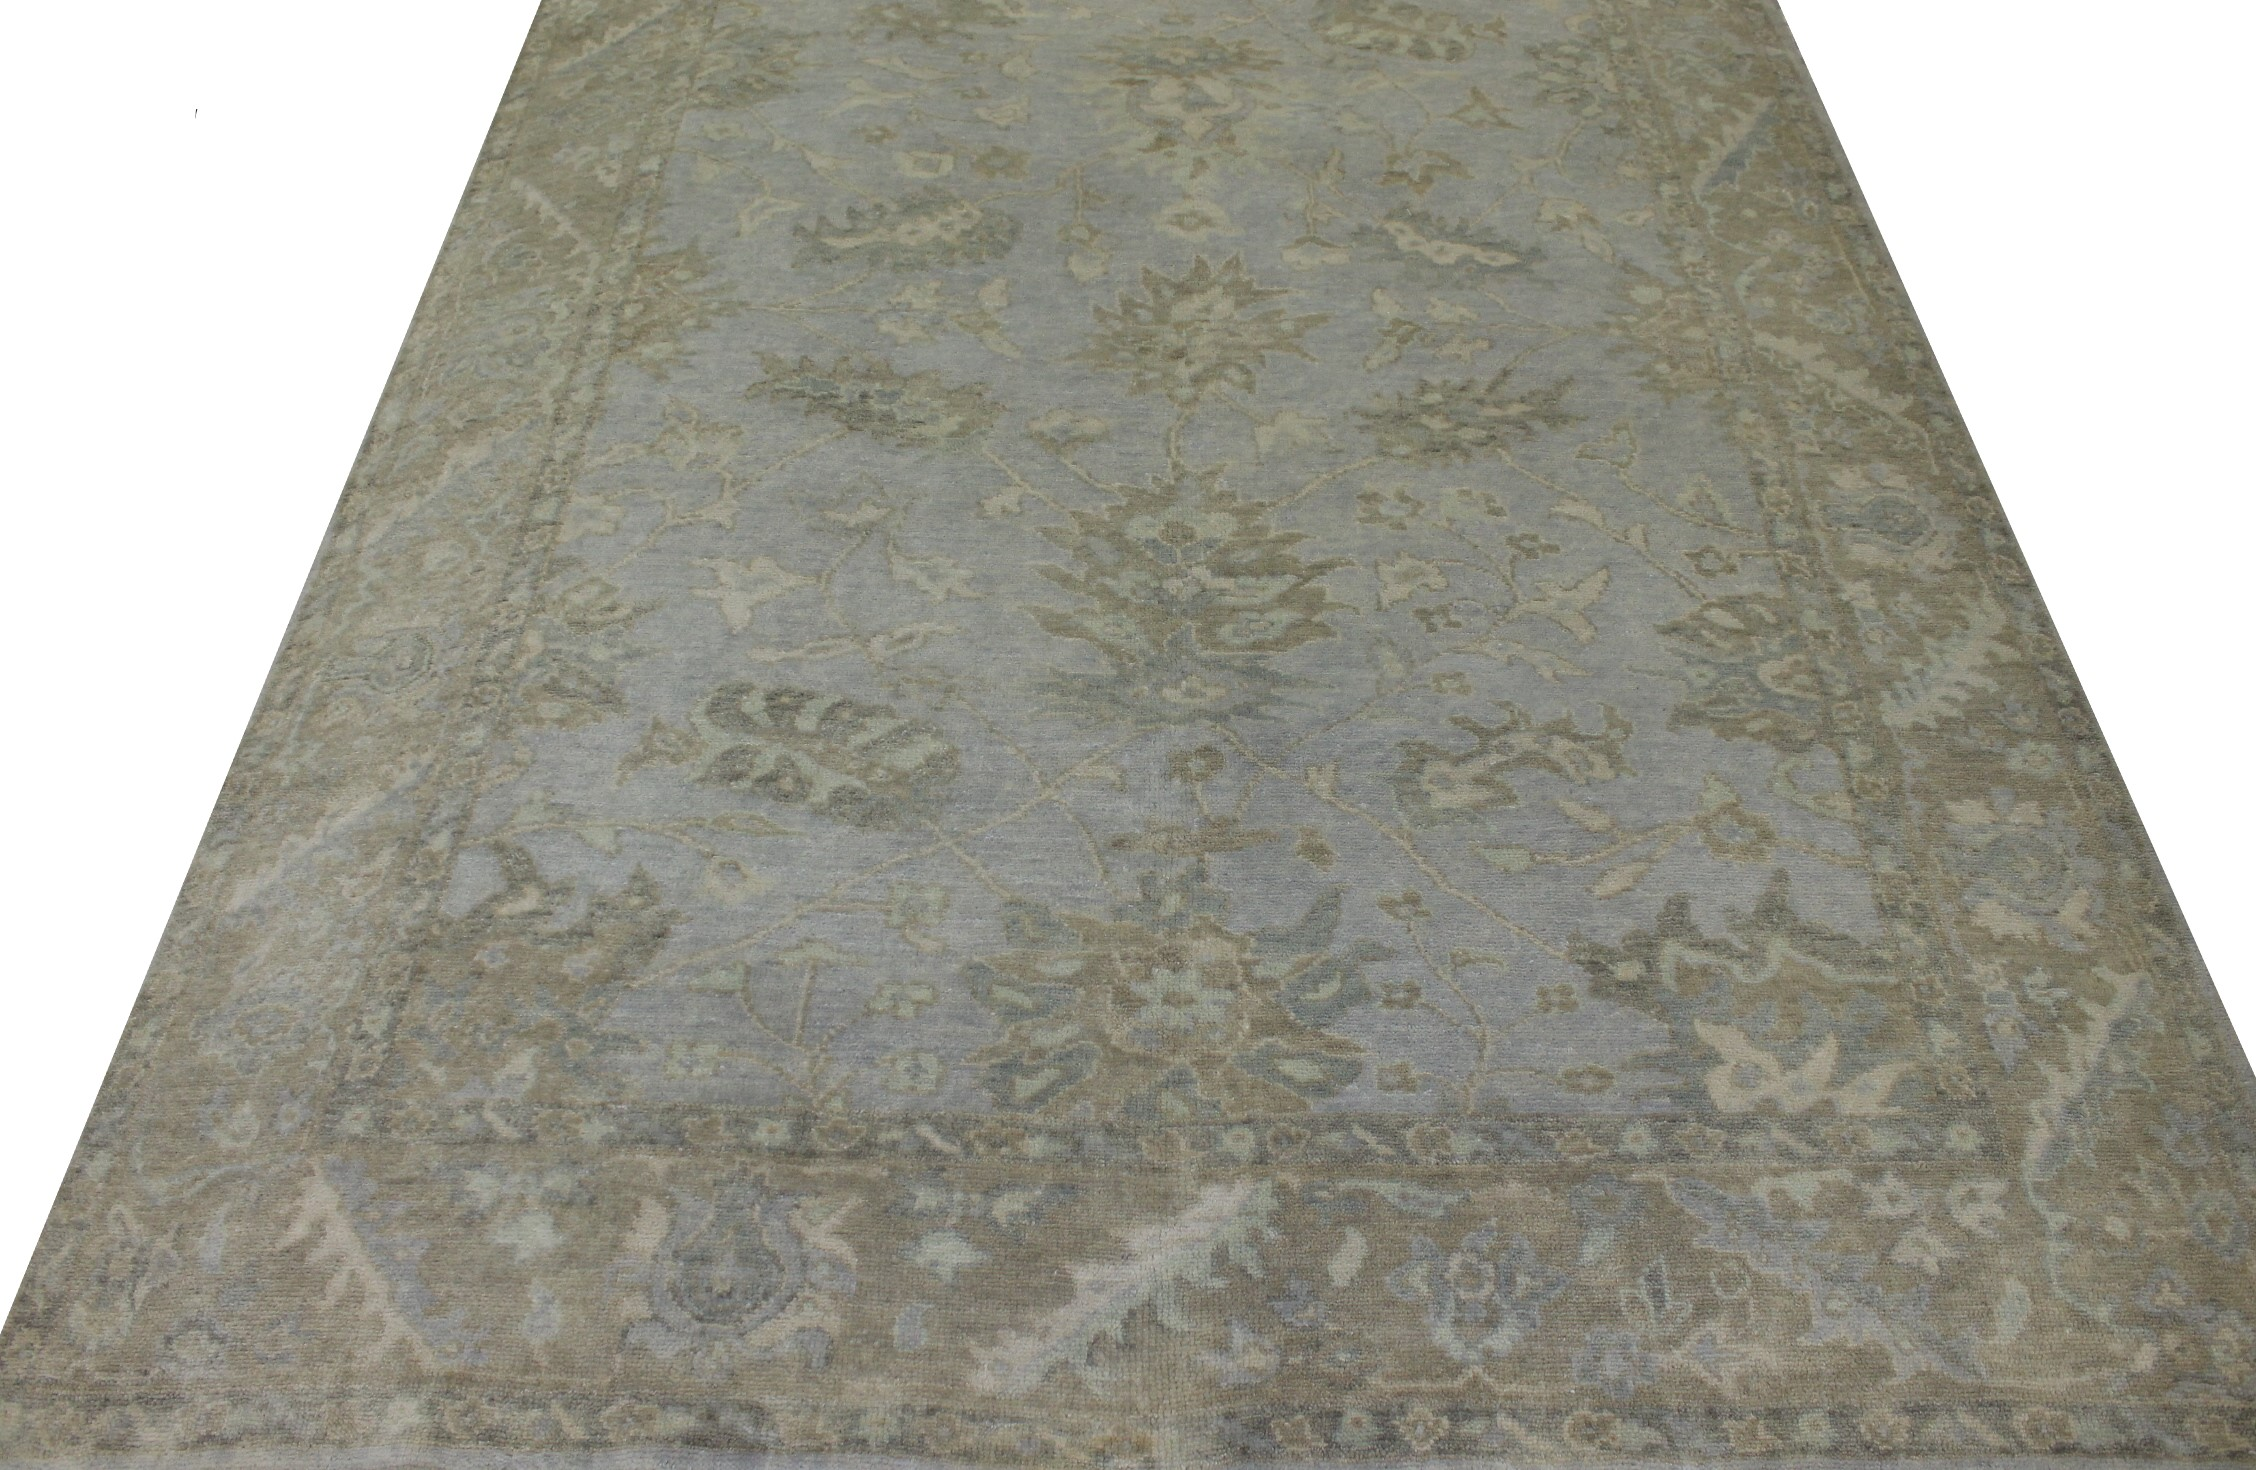 6x9 Oushak Hand Knotted Wool Area Rug - MR19763